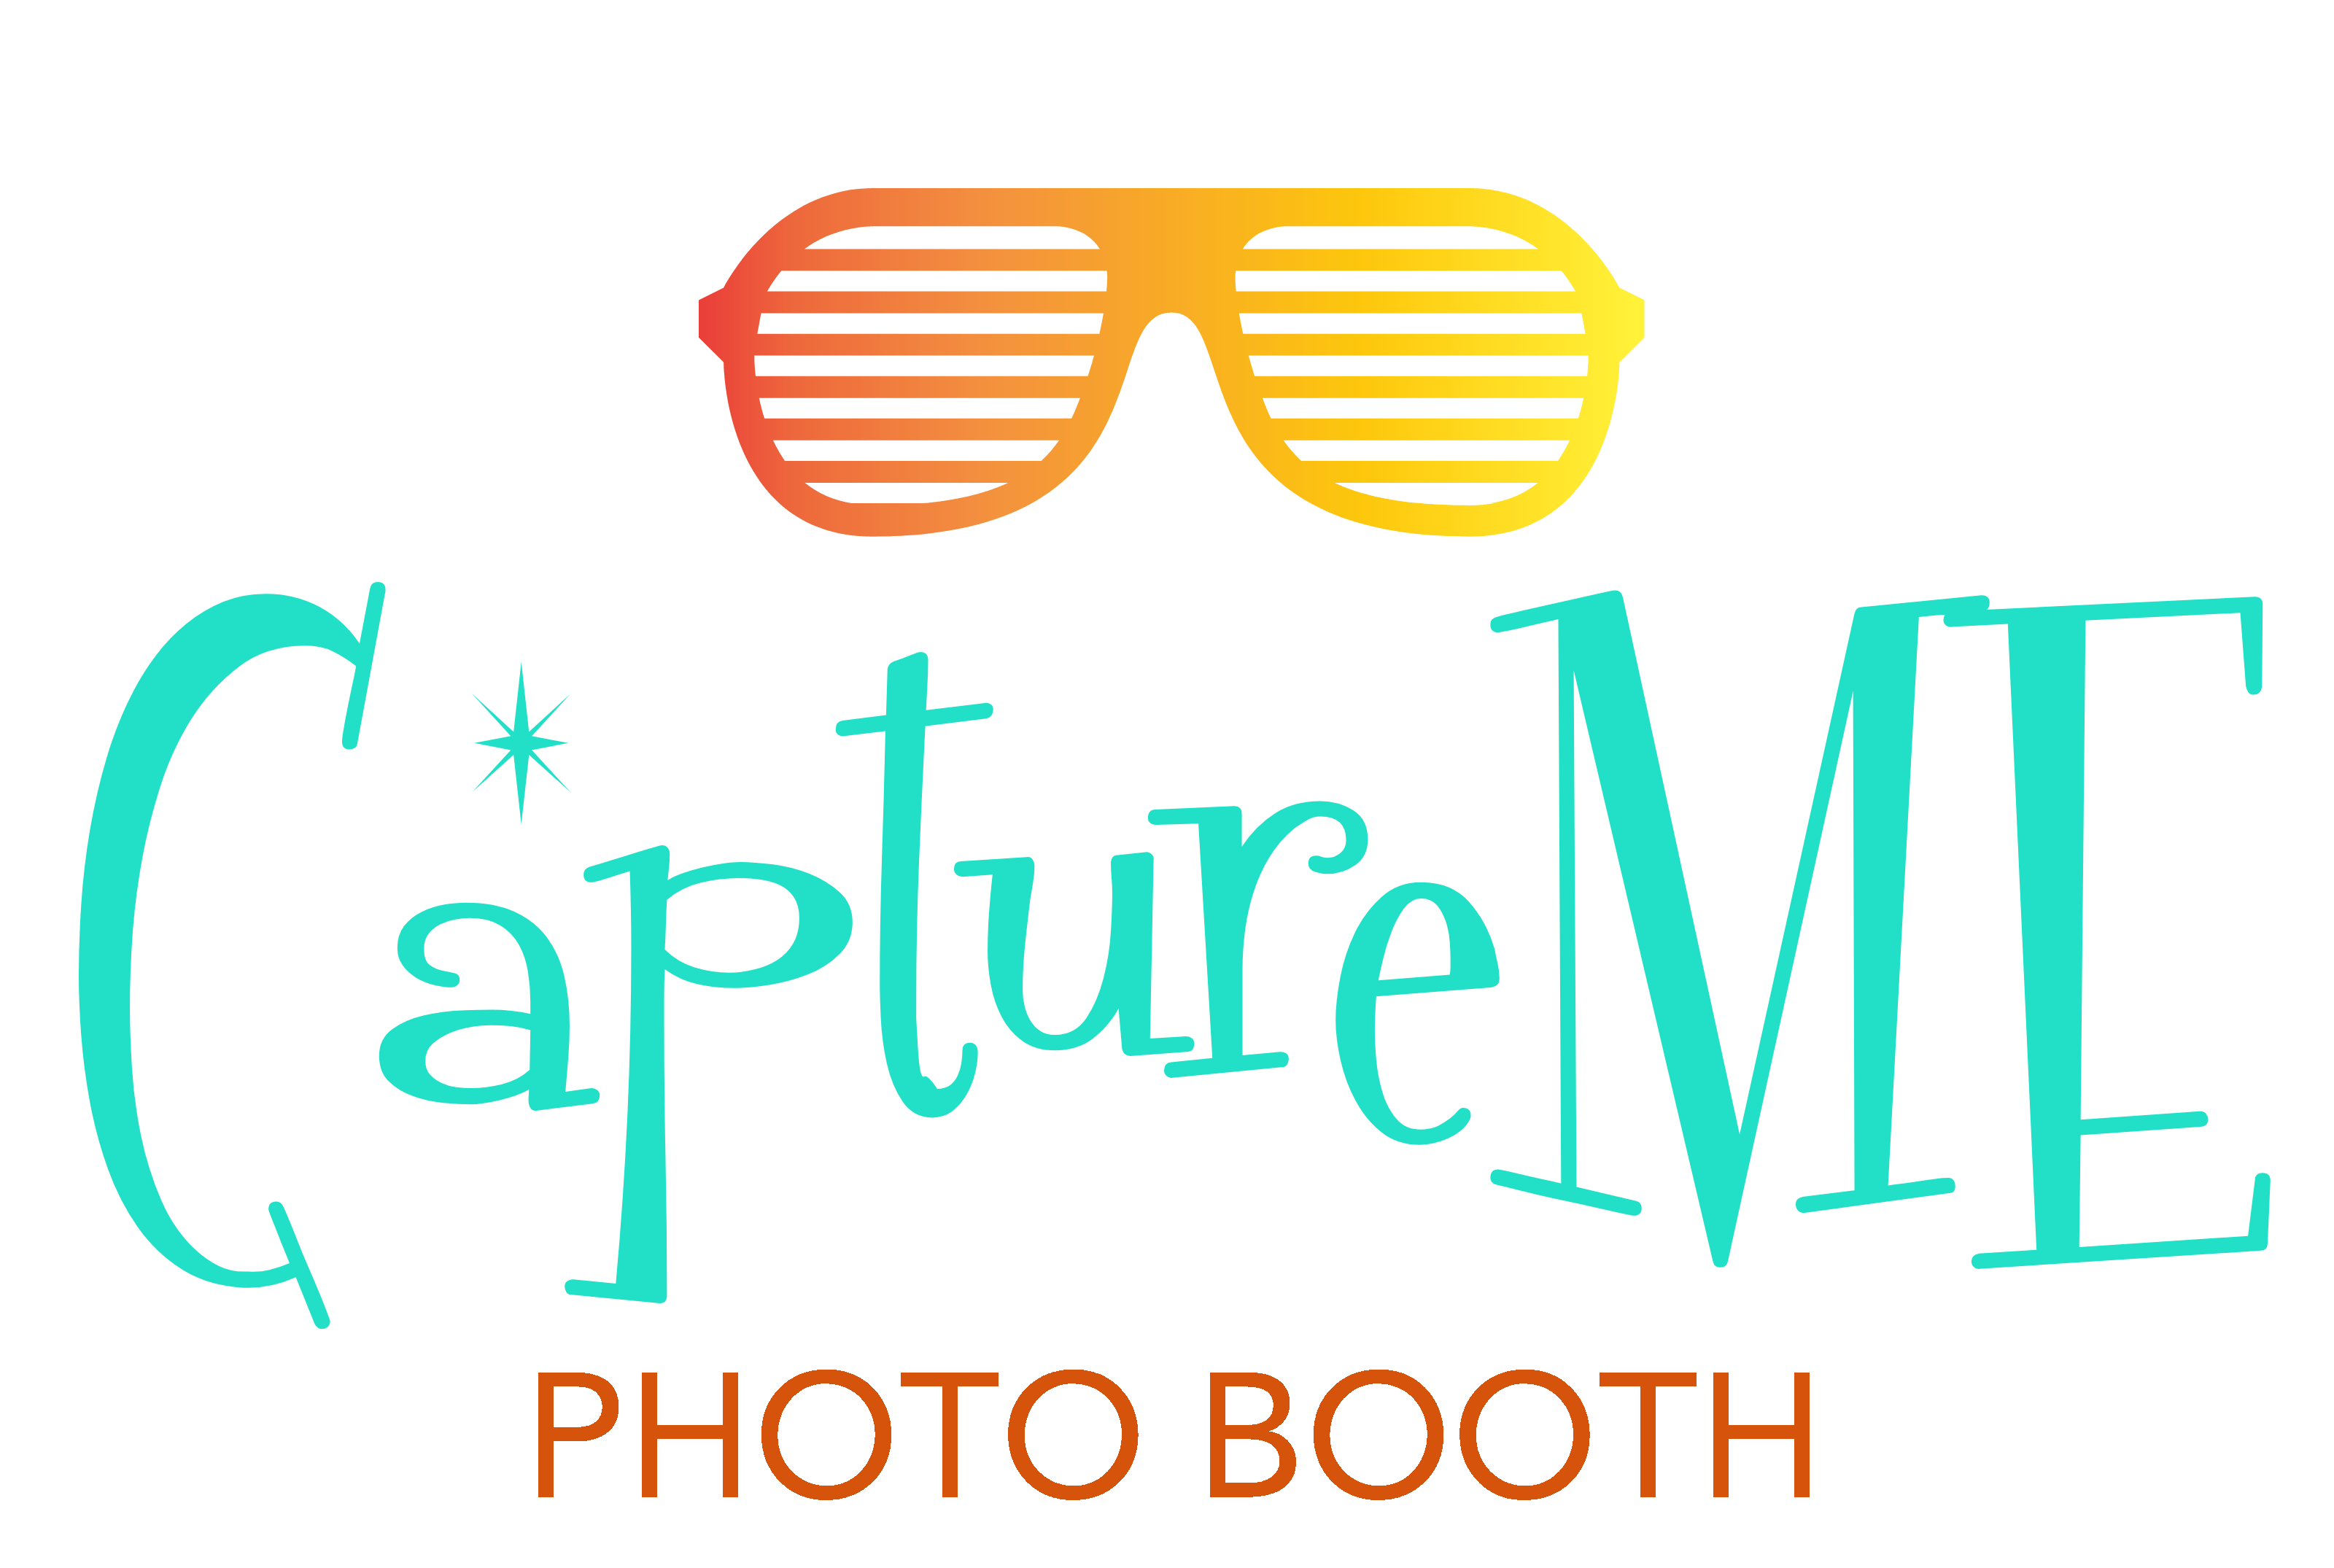 CaptureME Best Photo Booth Rental Fort Collins